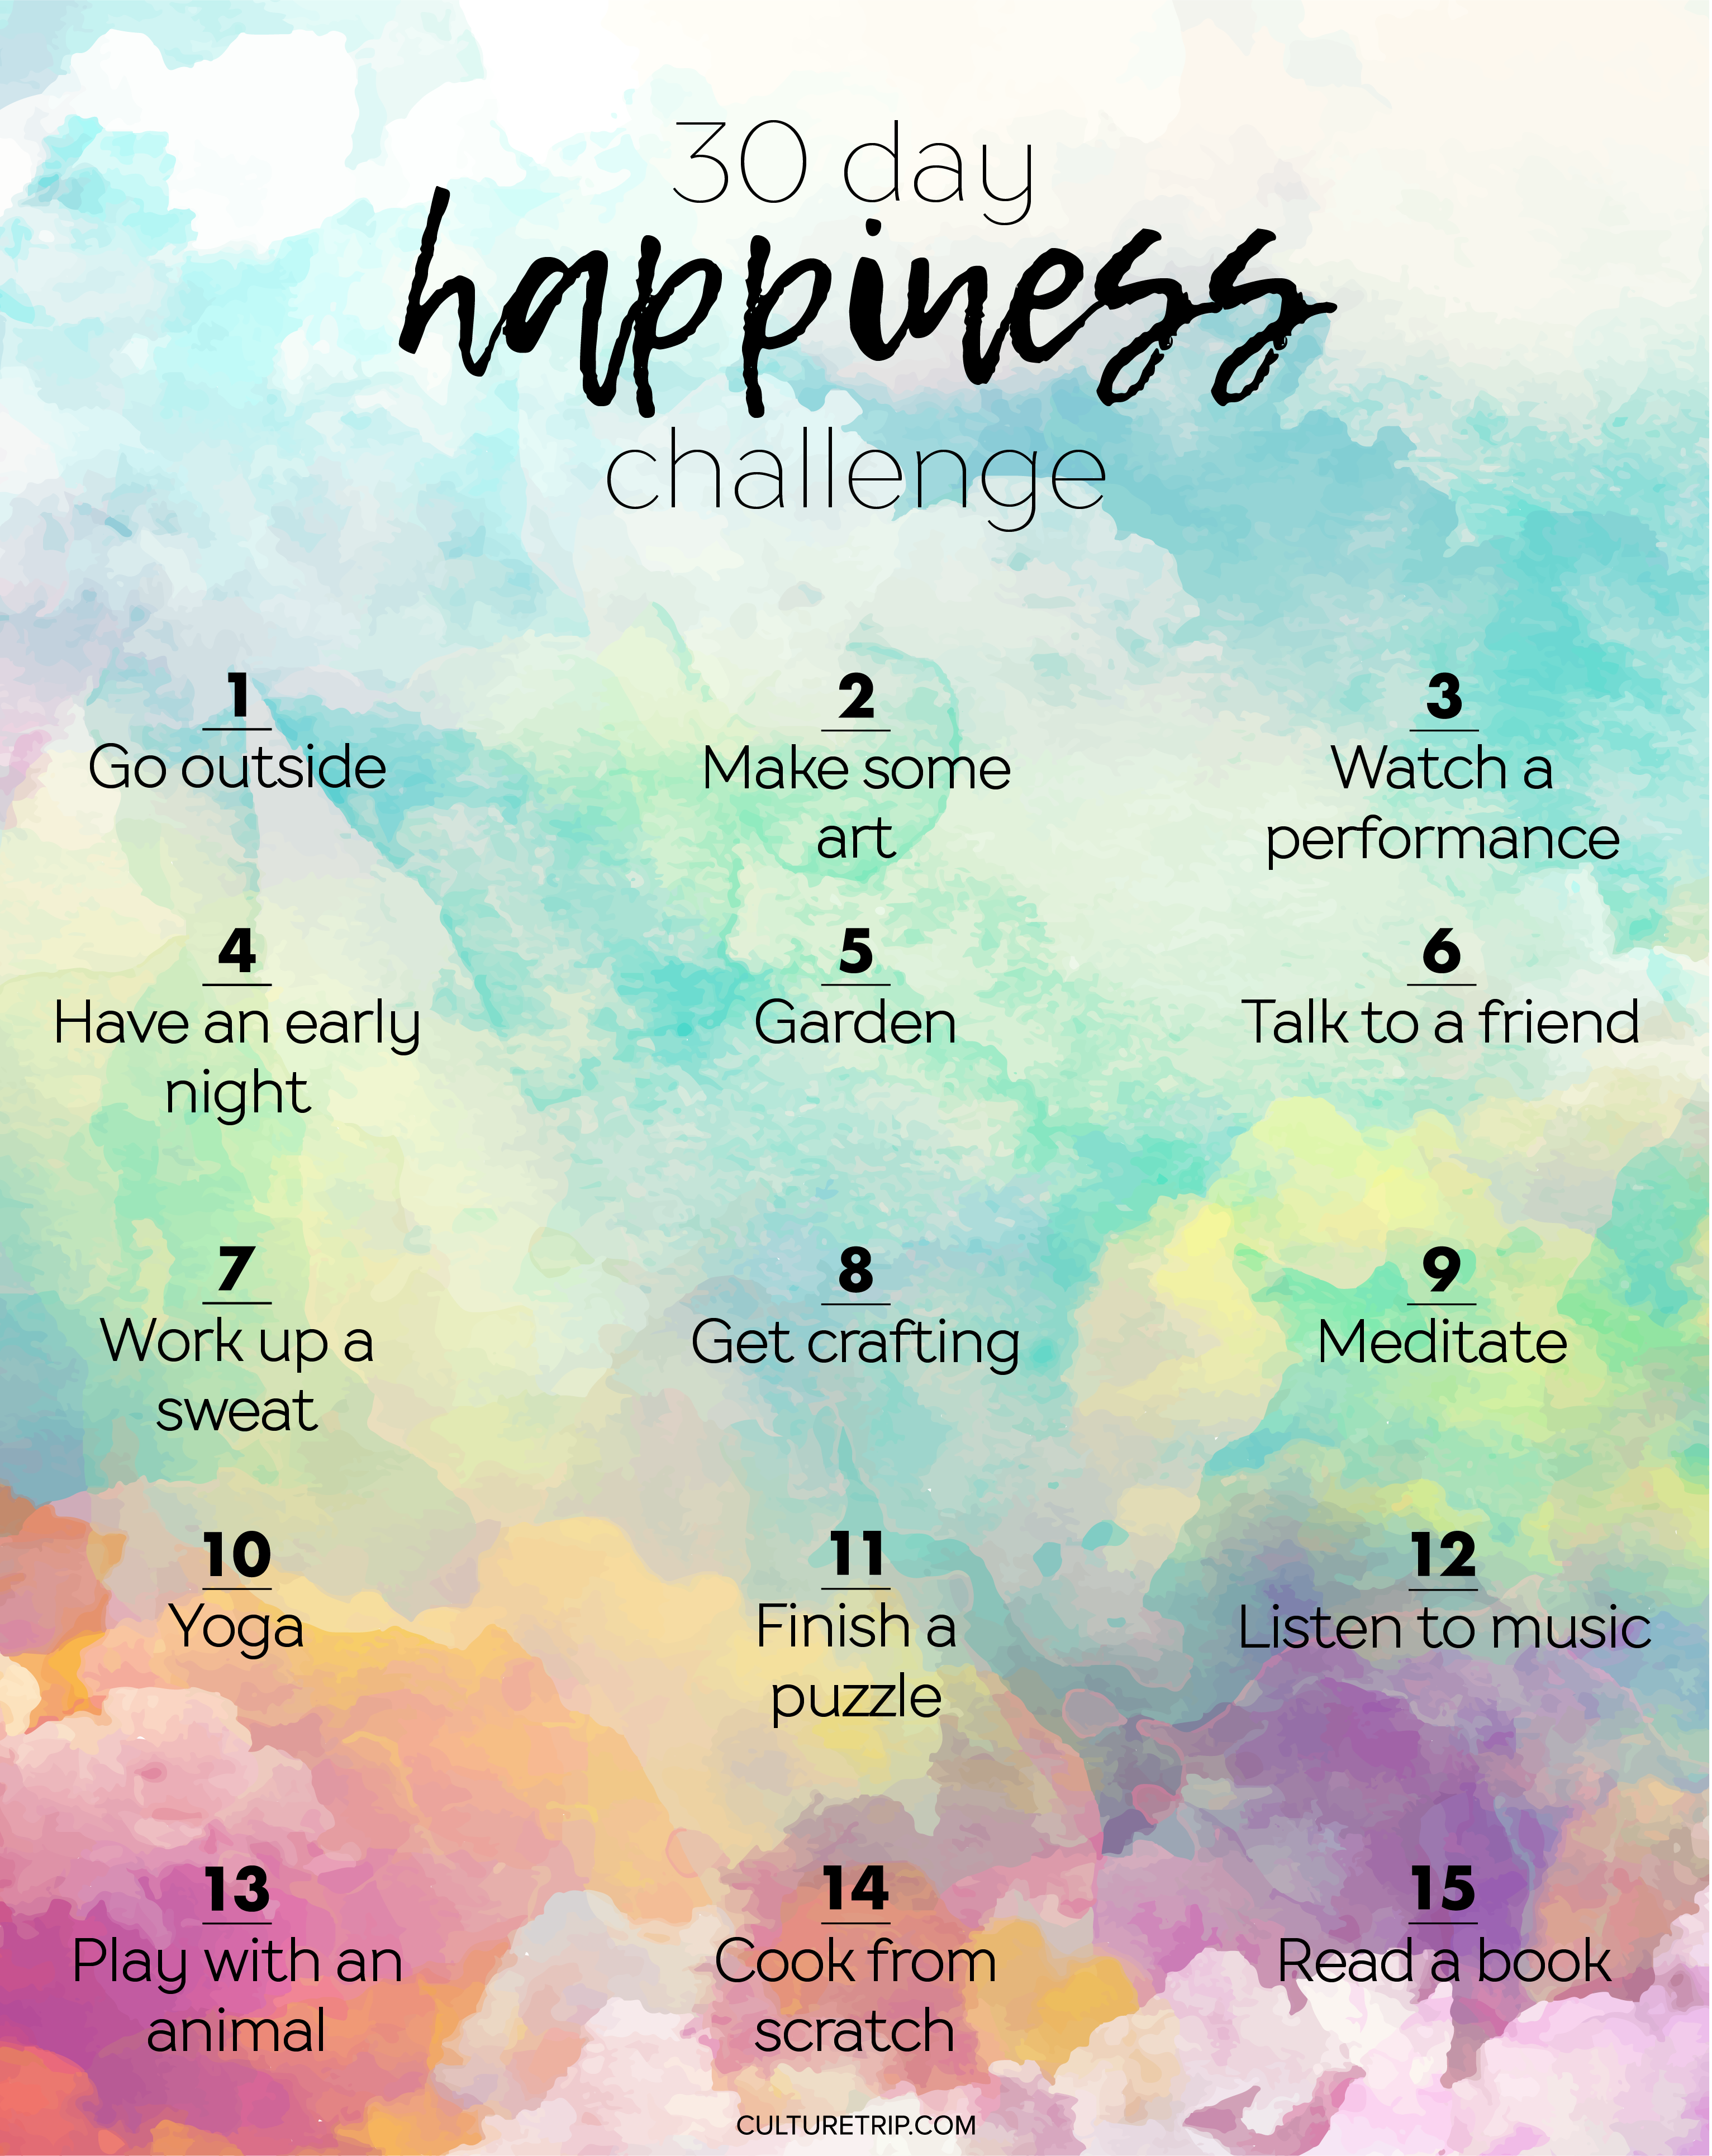 The 30 Day Happiness Challenge